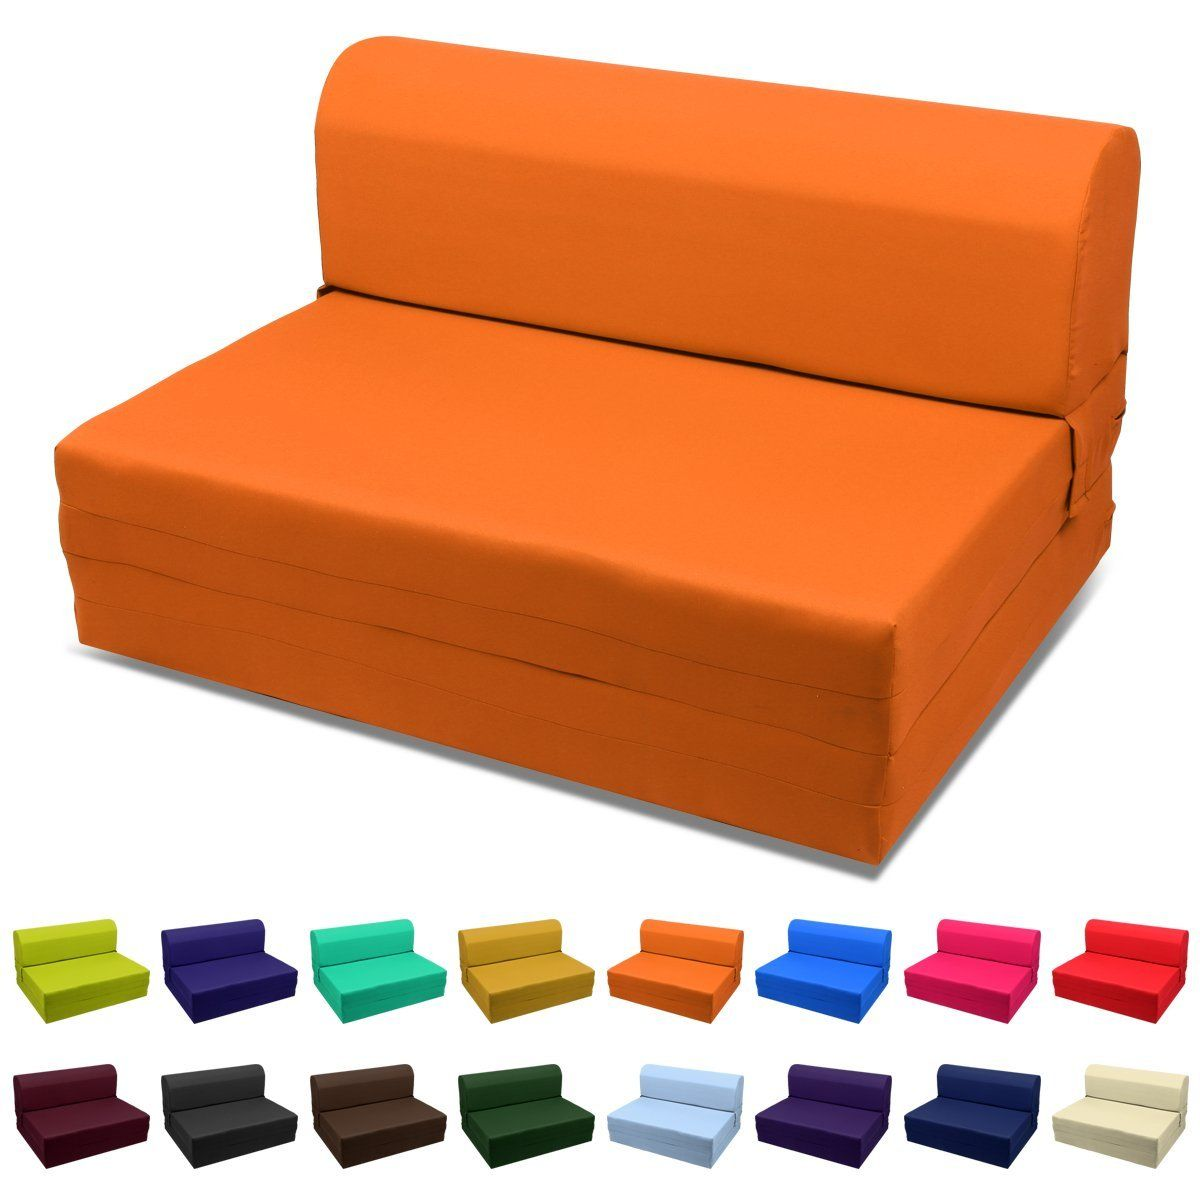 - Home Sleeper Chair, Foam Bed, Bed Sizes